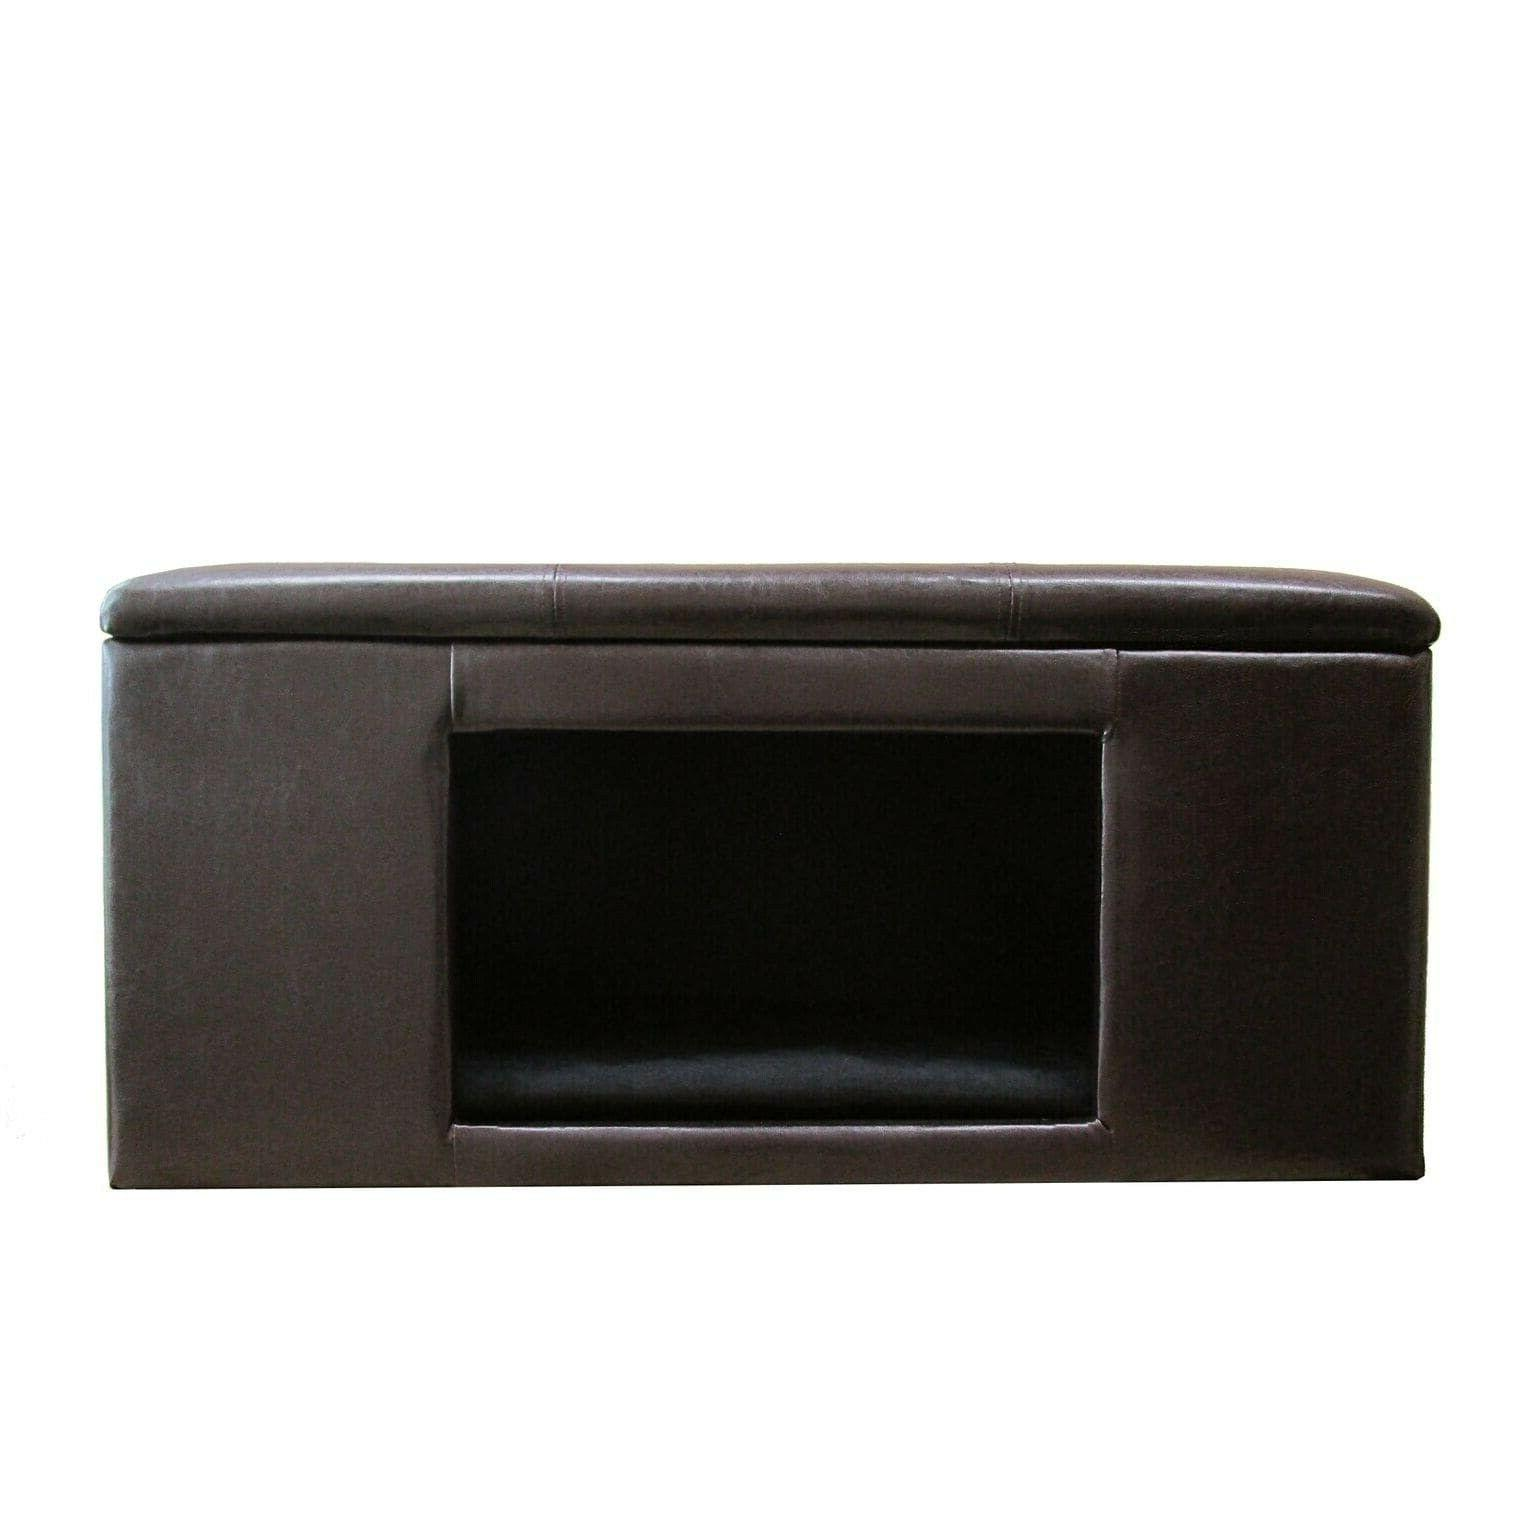 Pet Cat Bed Bench Appreciate the of this luxury pet furniture